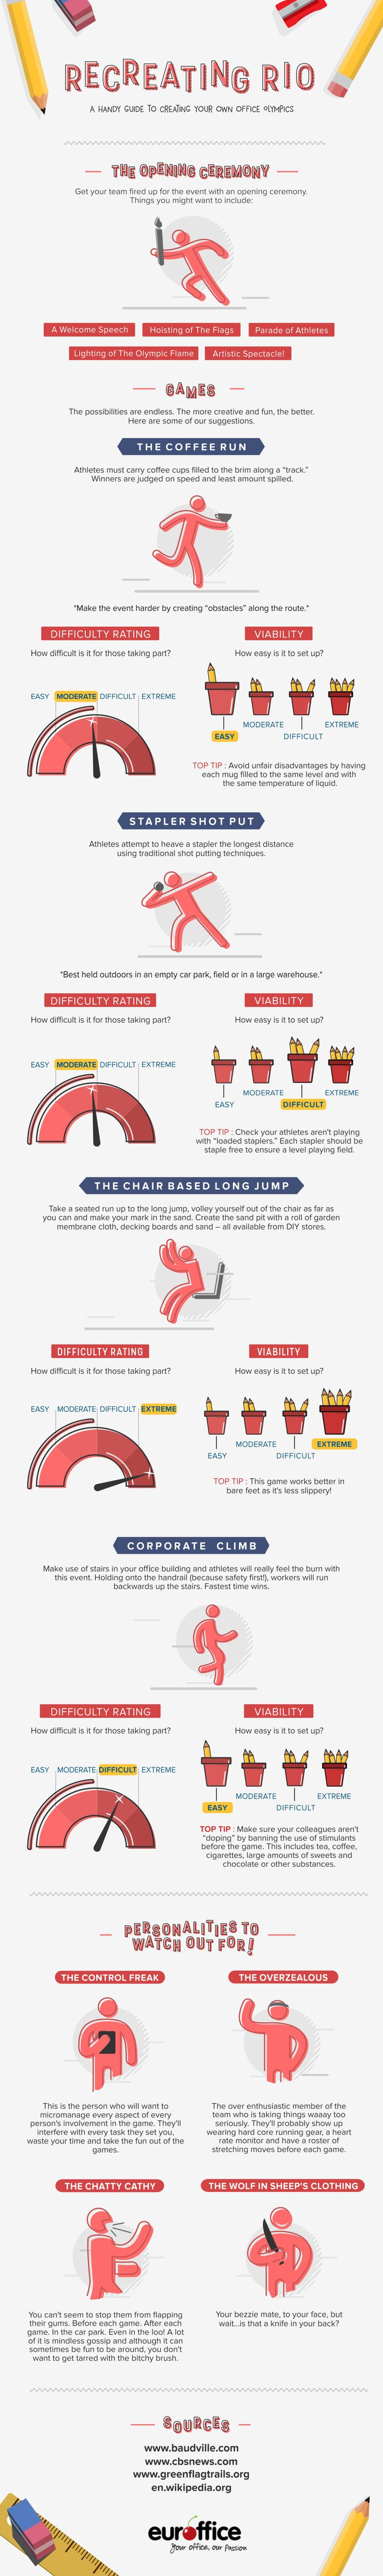 Infographic Of The Day: Recreating Rio - Your Office Olympics